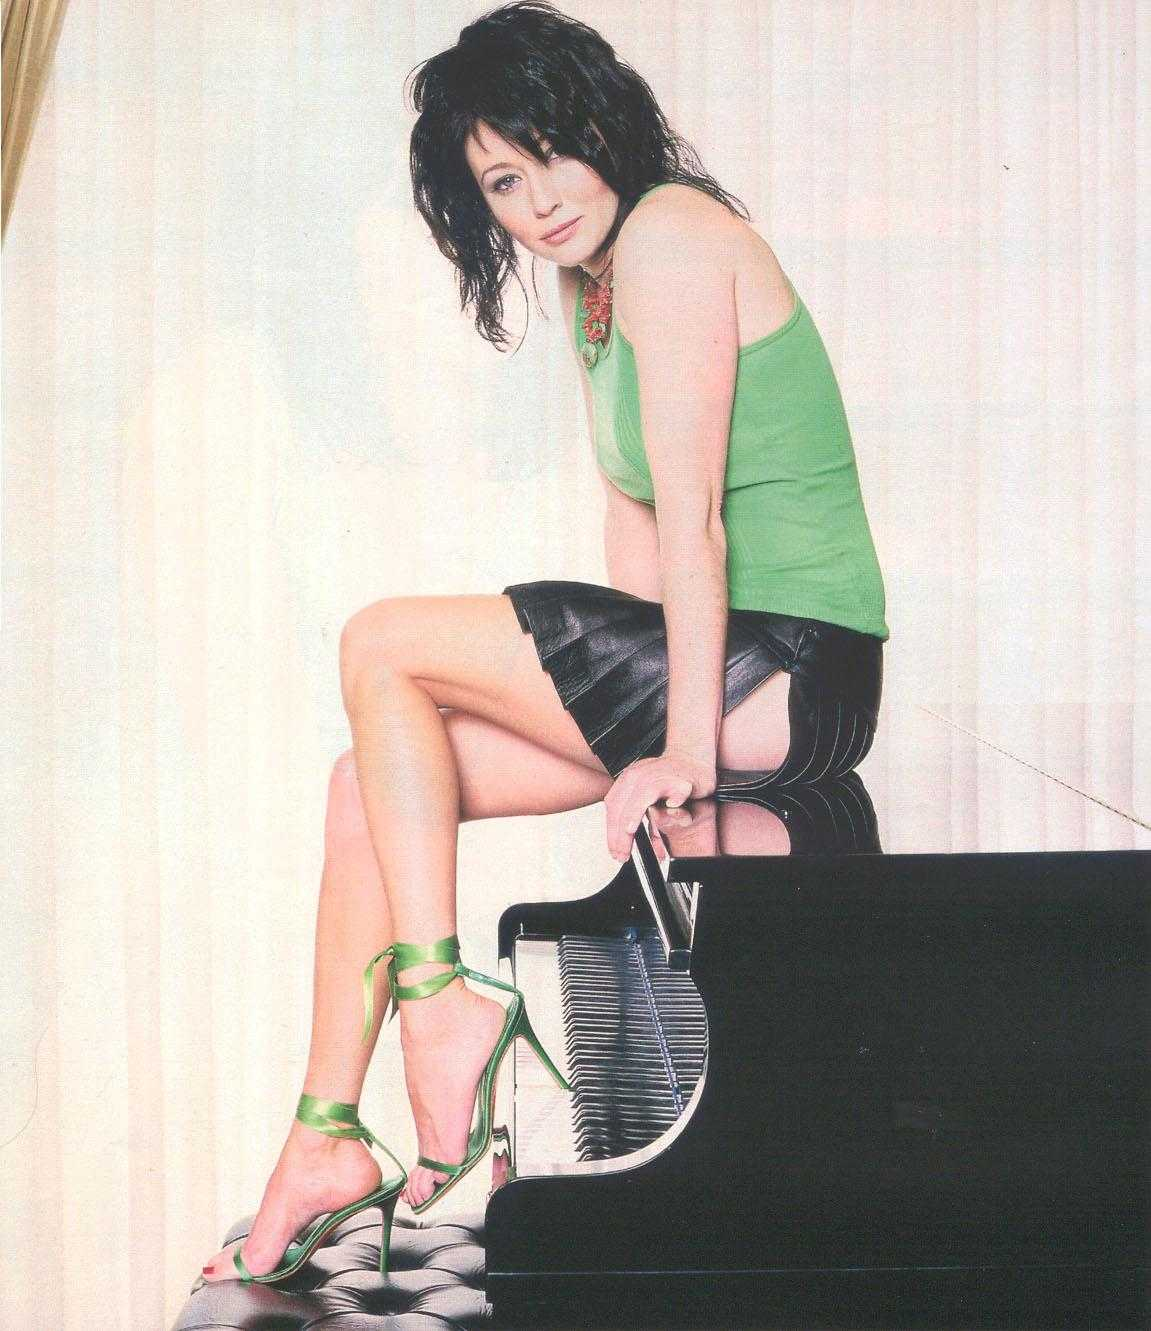 Shannen Doherty booty pics